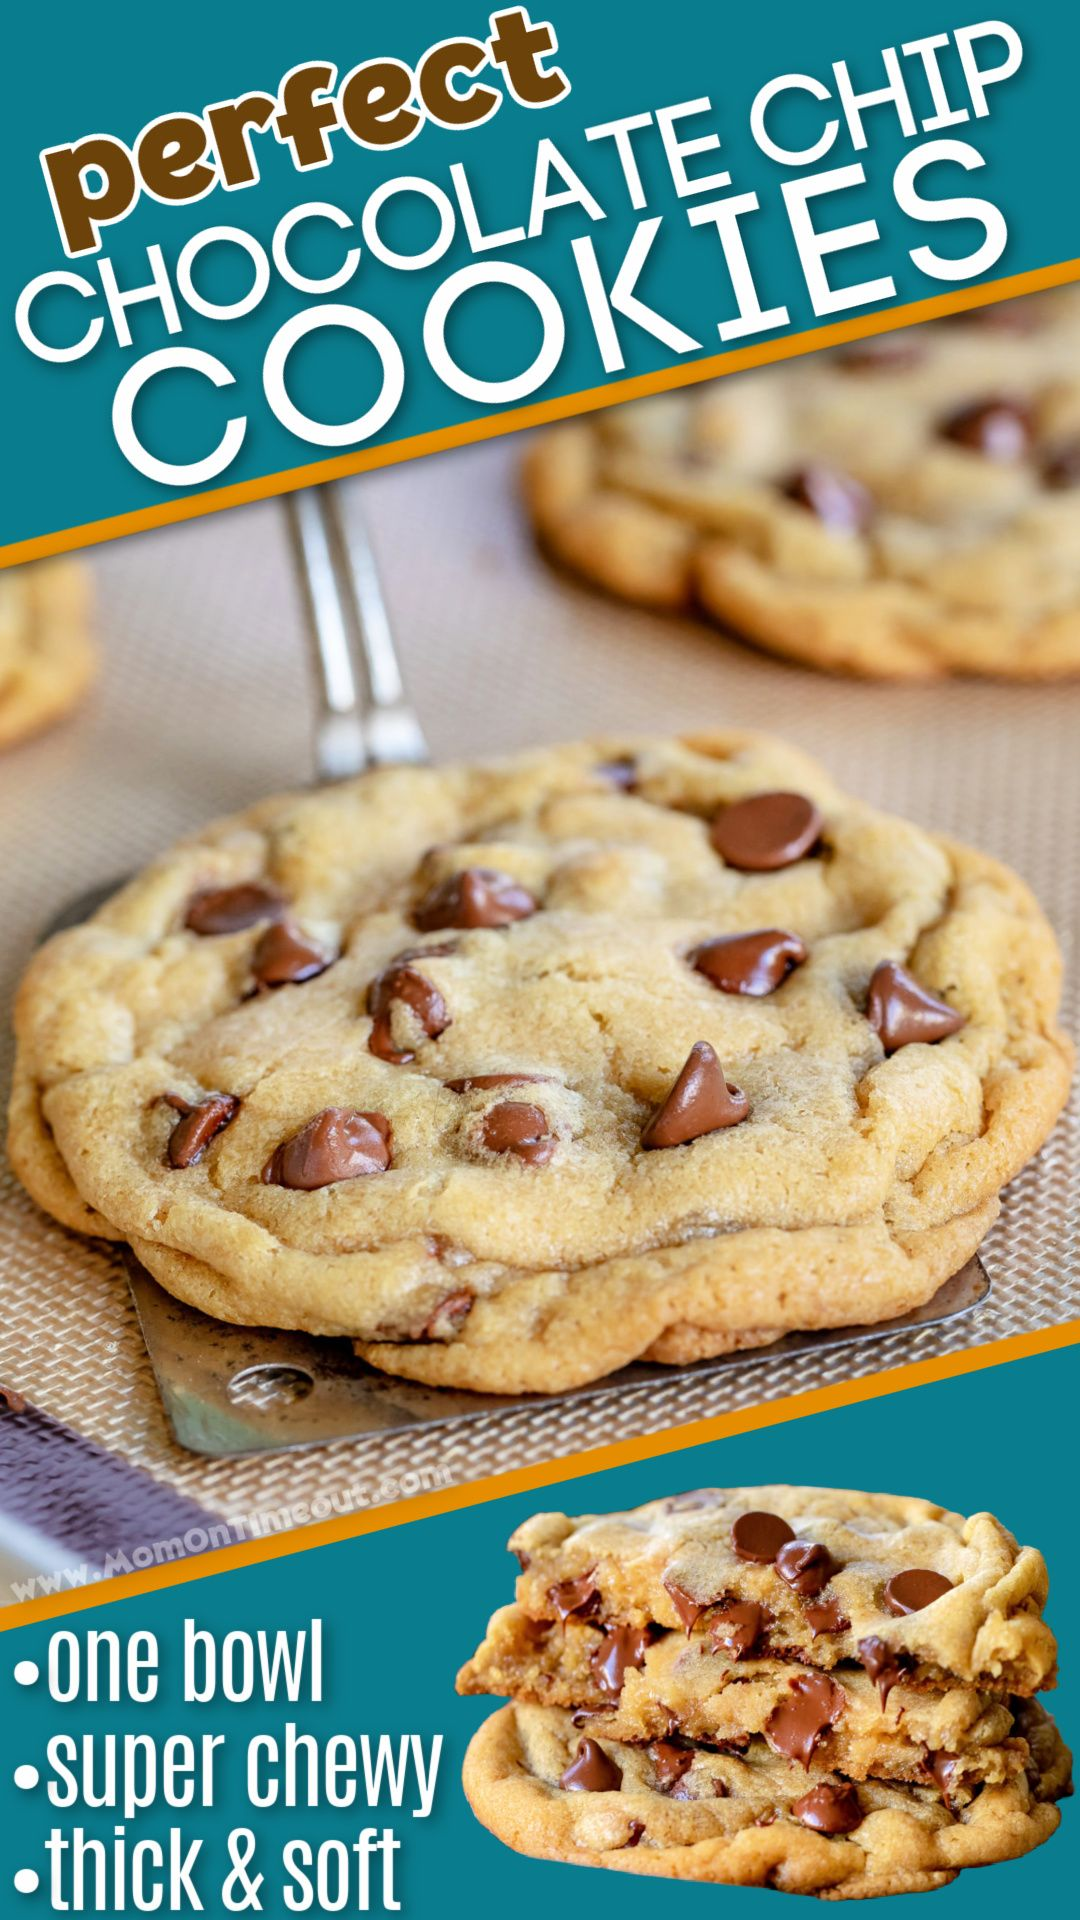 Perfect Chocolate Chip Cookies - Soft and Chewy!